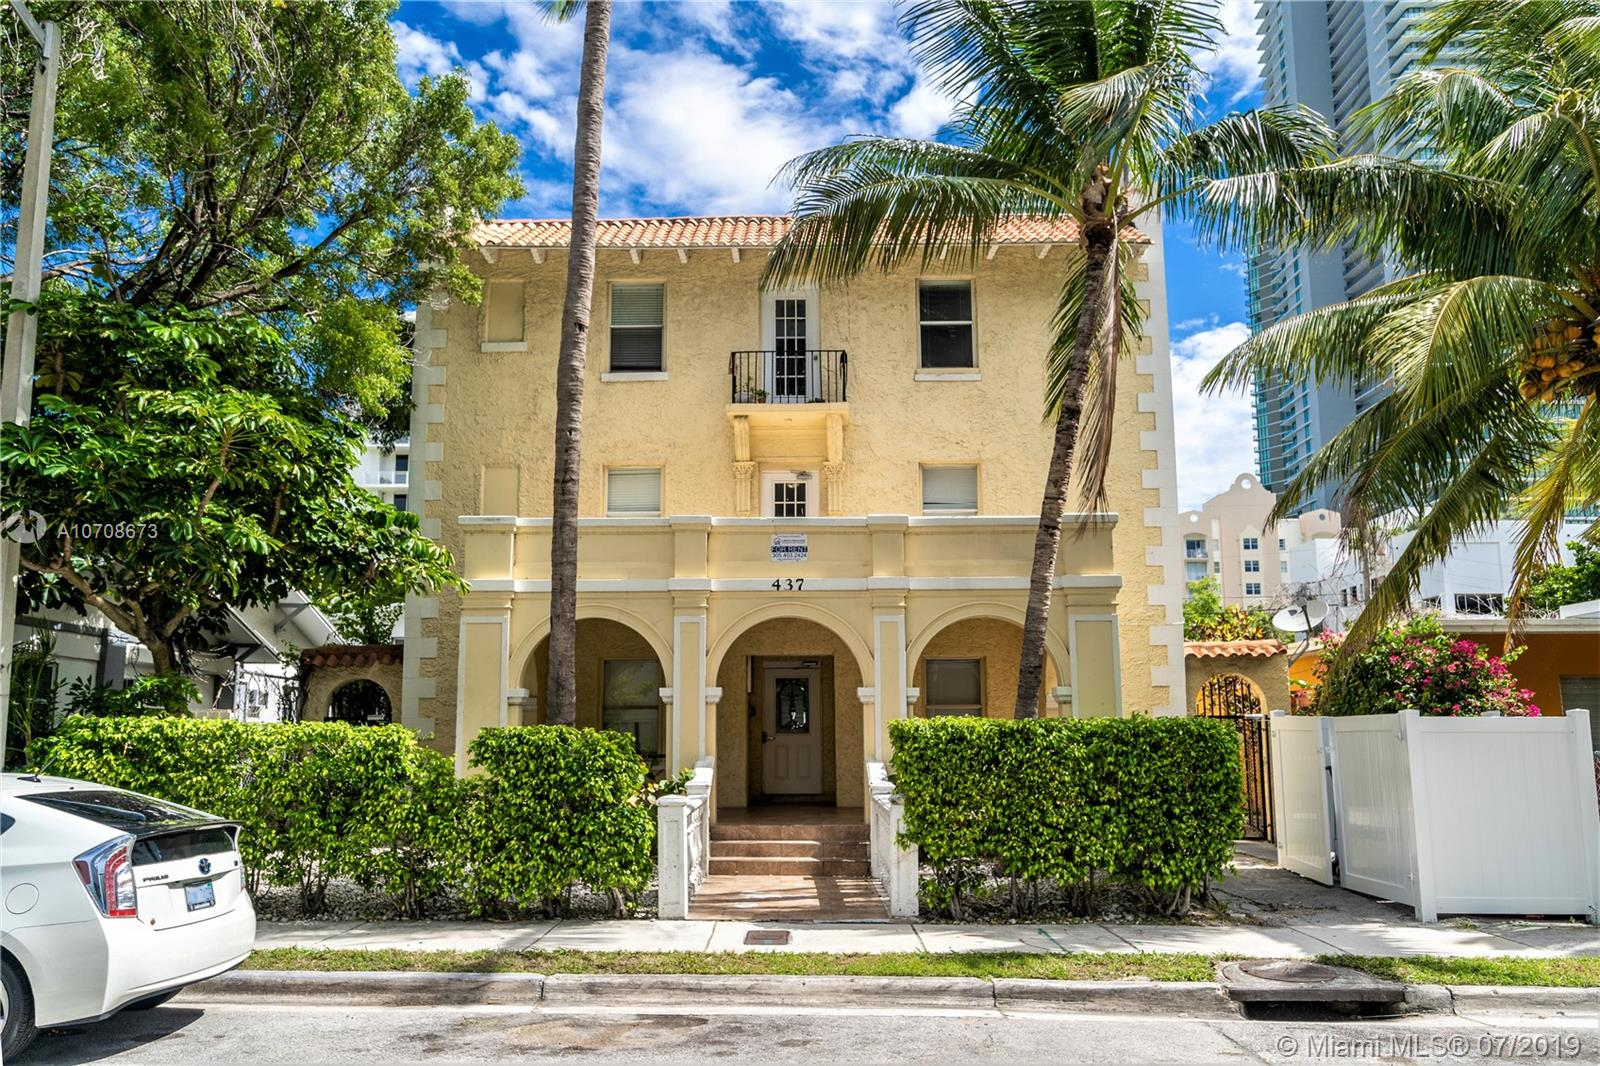 437 N E 29 ST #205 For Sale A10708673, FL